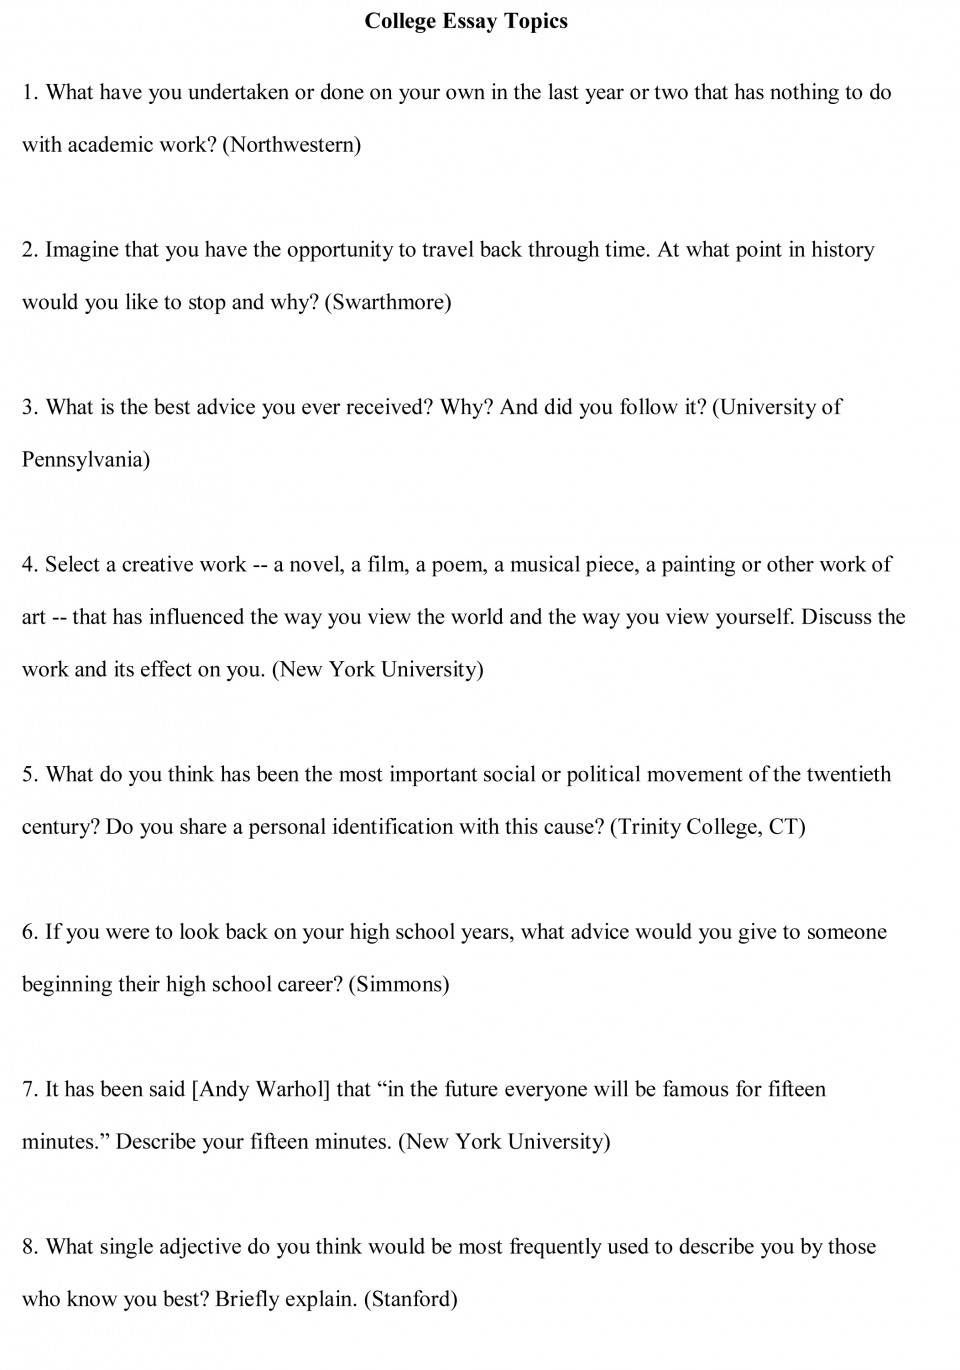 002 College Essay Topics Free Sample1cbu003d Top Failure Prompt Examples That Stand Out 2018 960